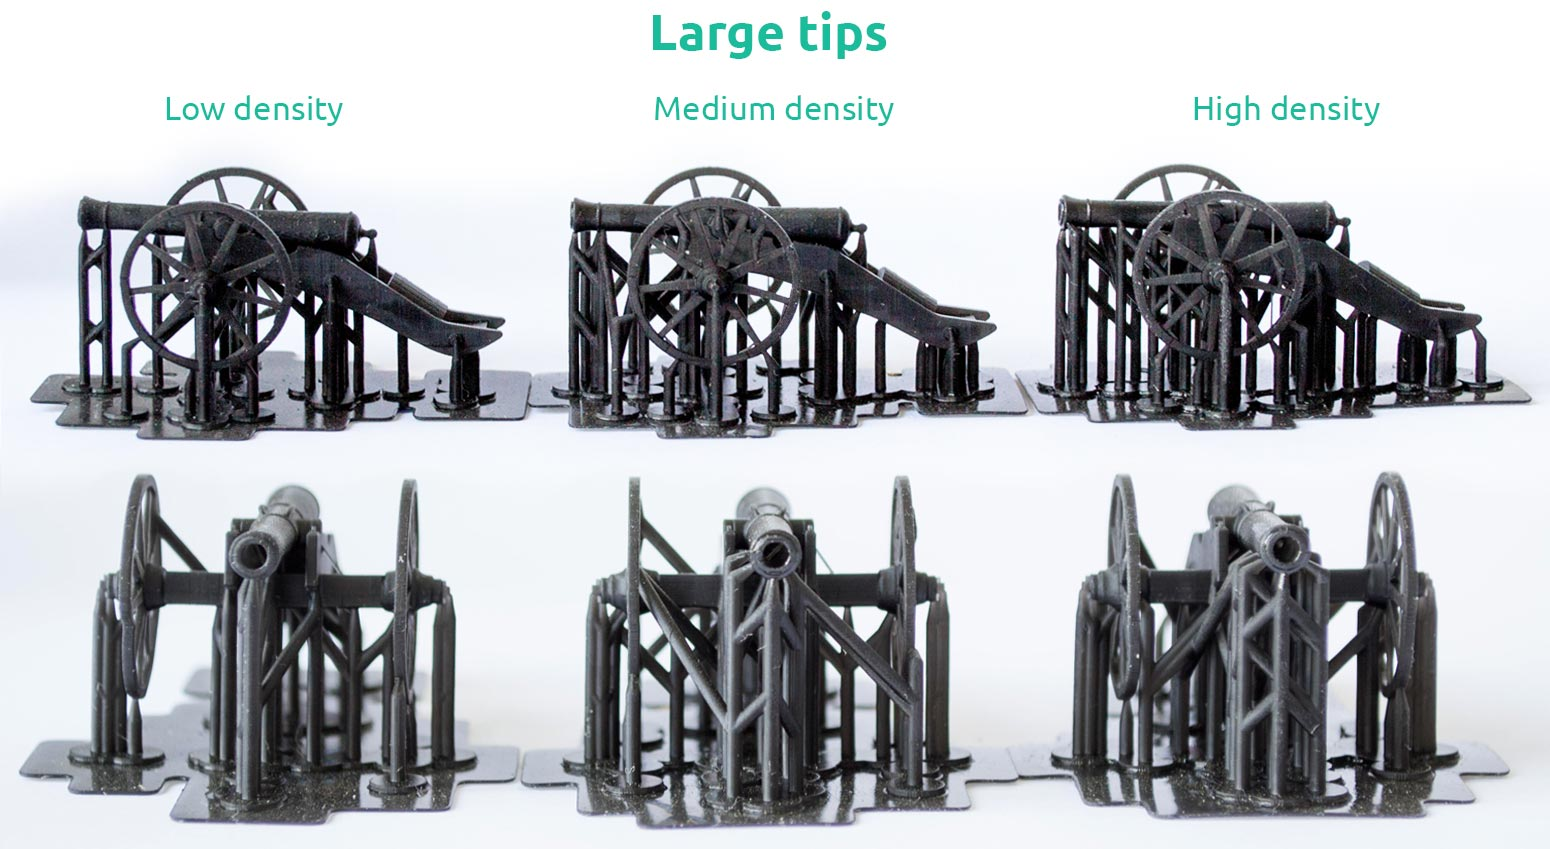 AmeraLabs key principles of 3D printing supports that work experiment cannon large tips